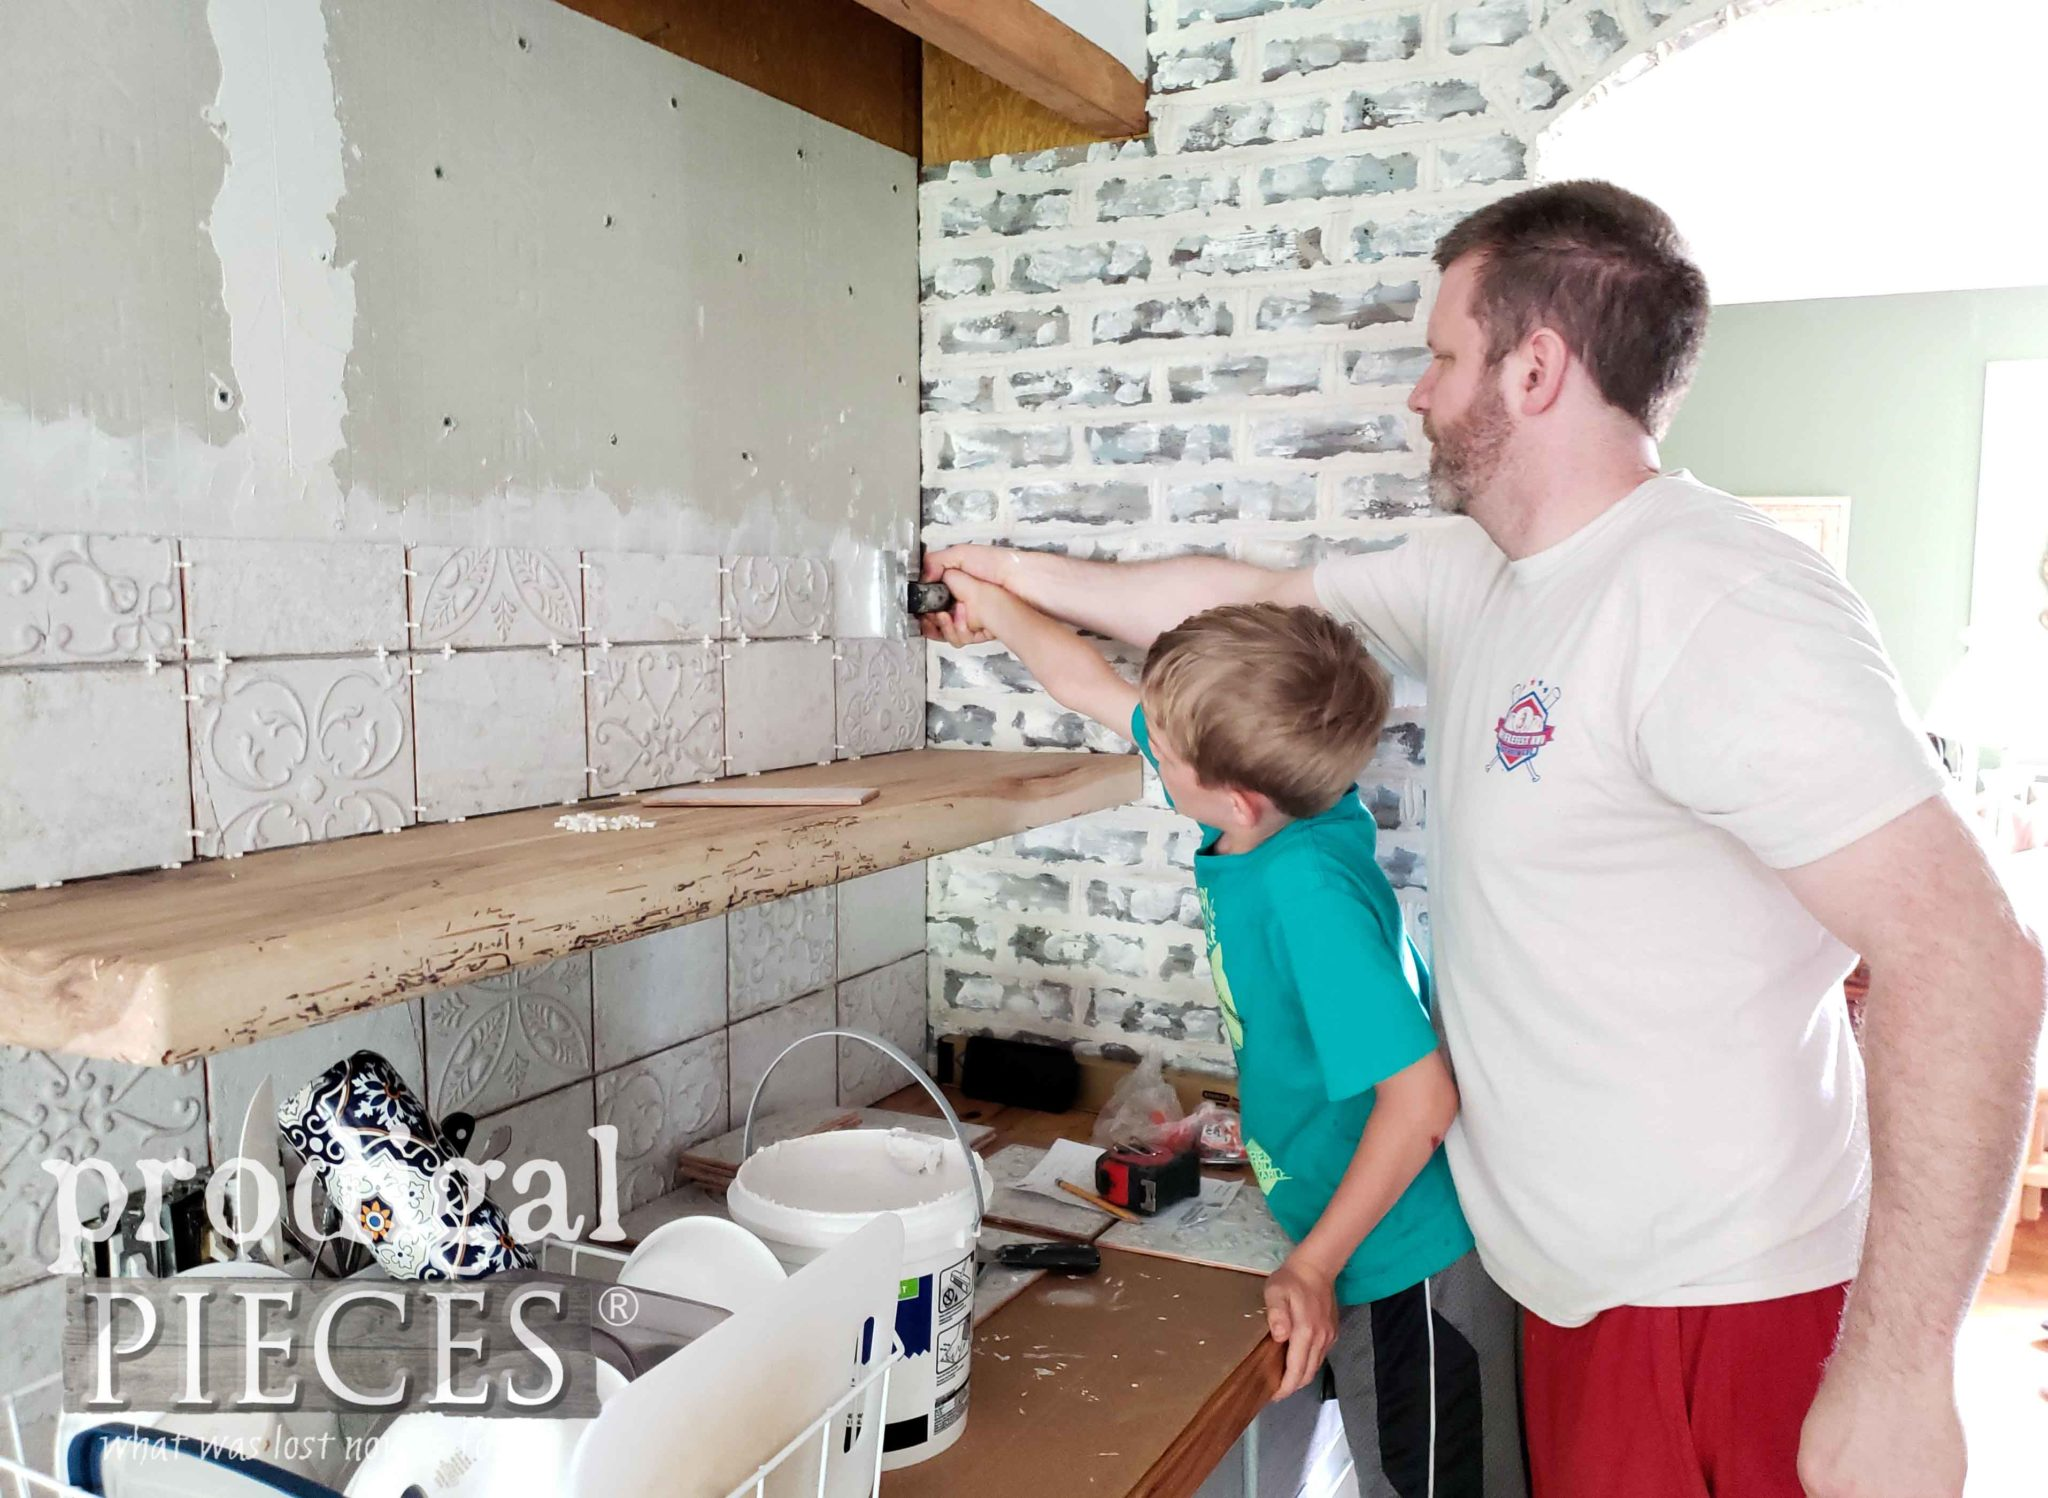 Dad and Son Hanging Kitchen Backsplash Tile in Farmhouse Kitchen Remodel | prodigalpieces.com